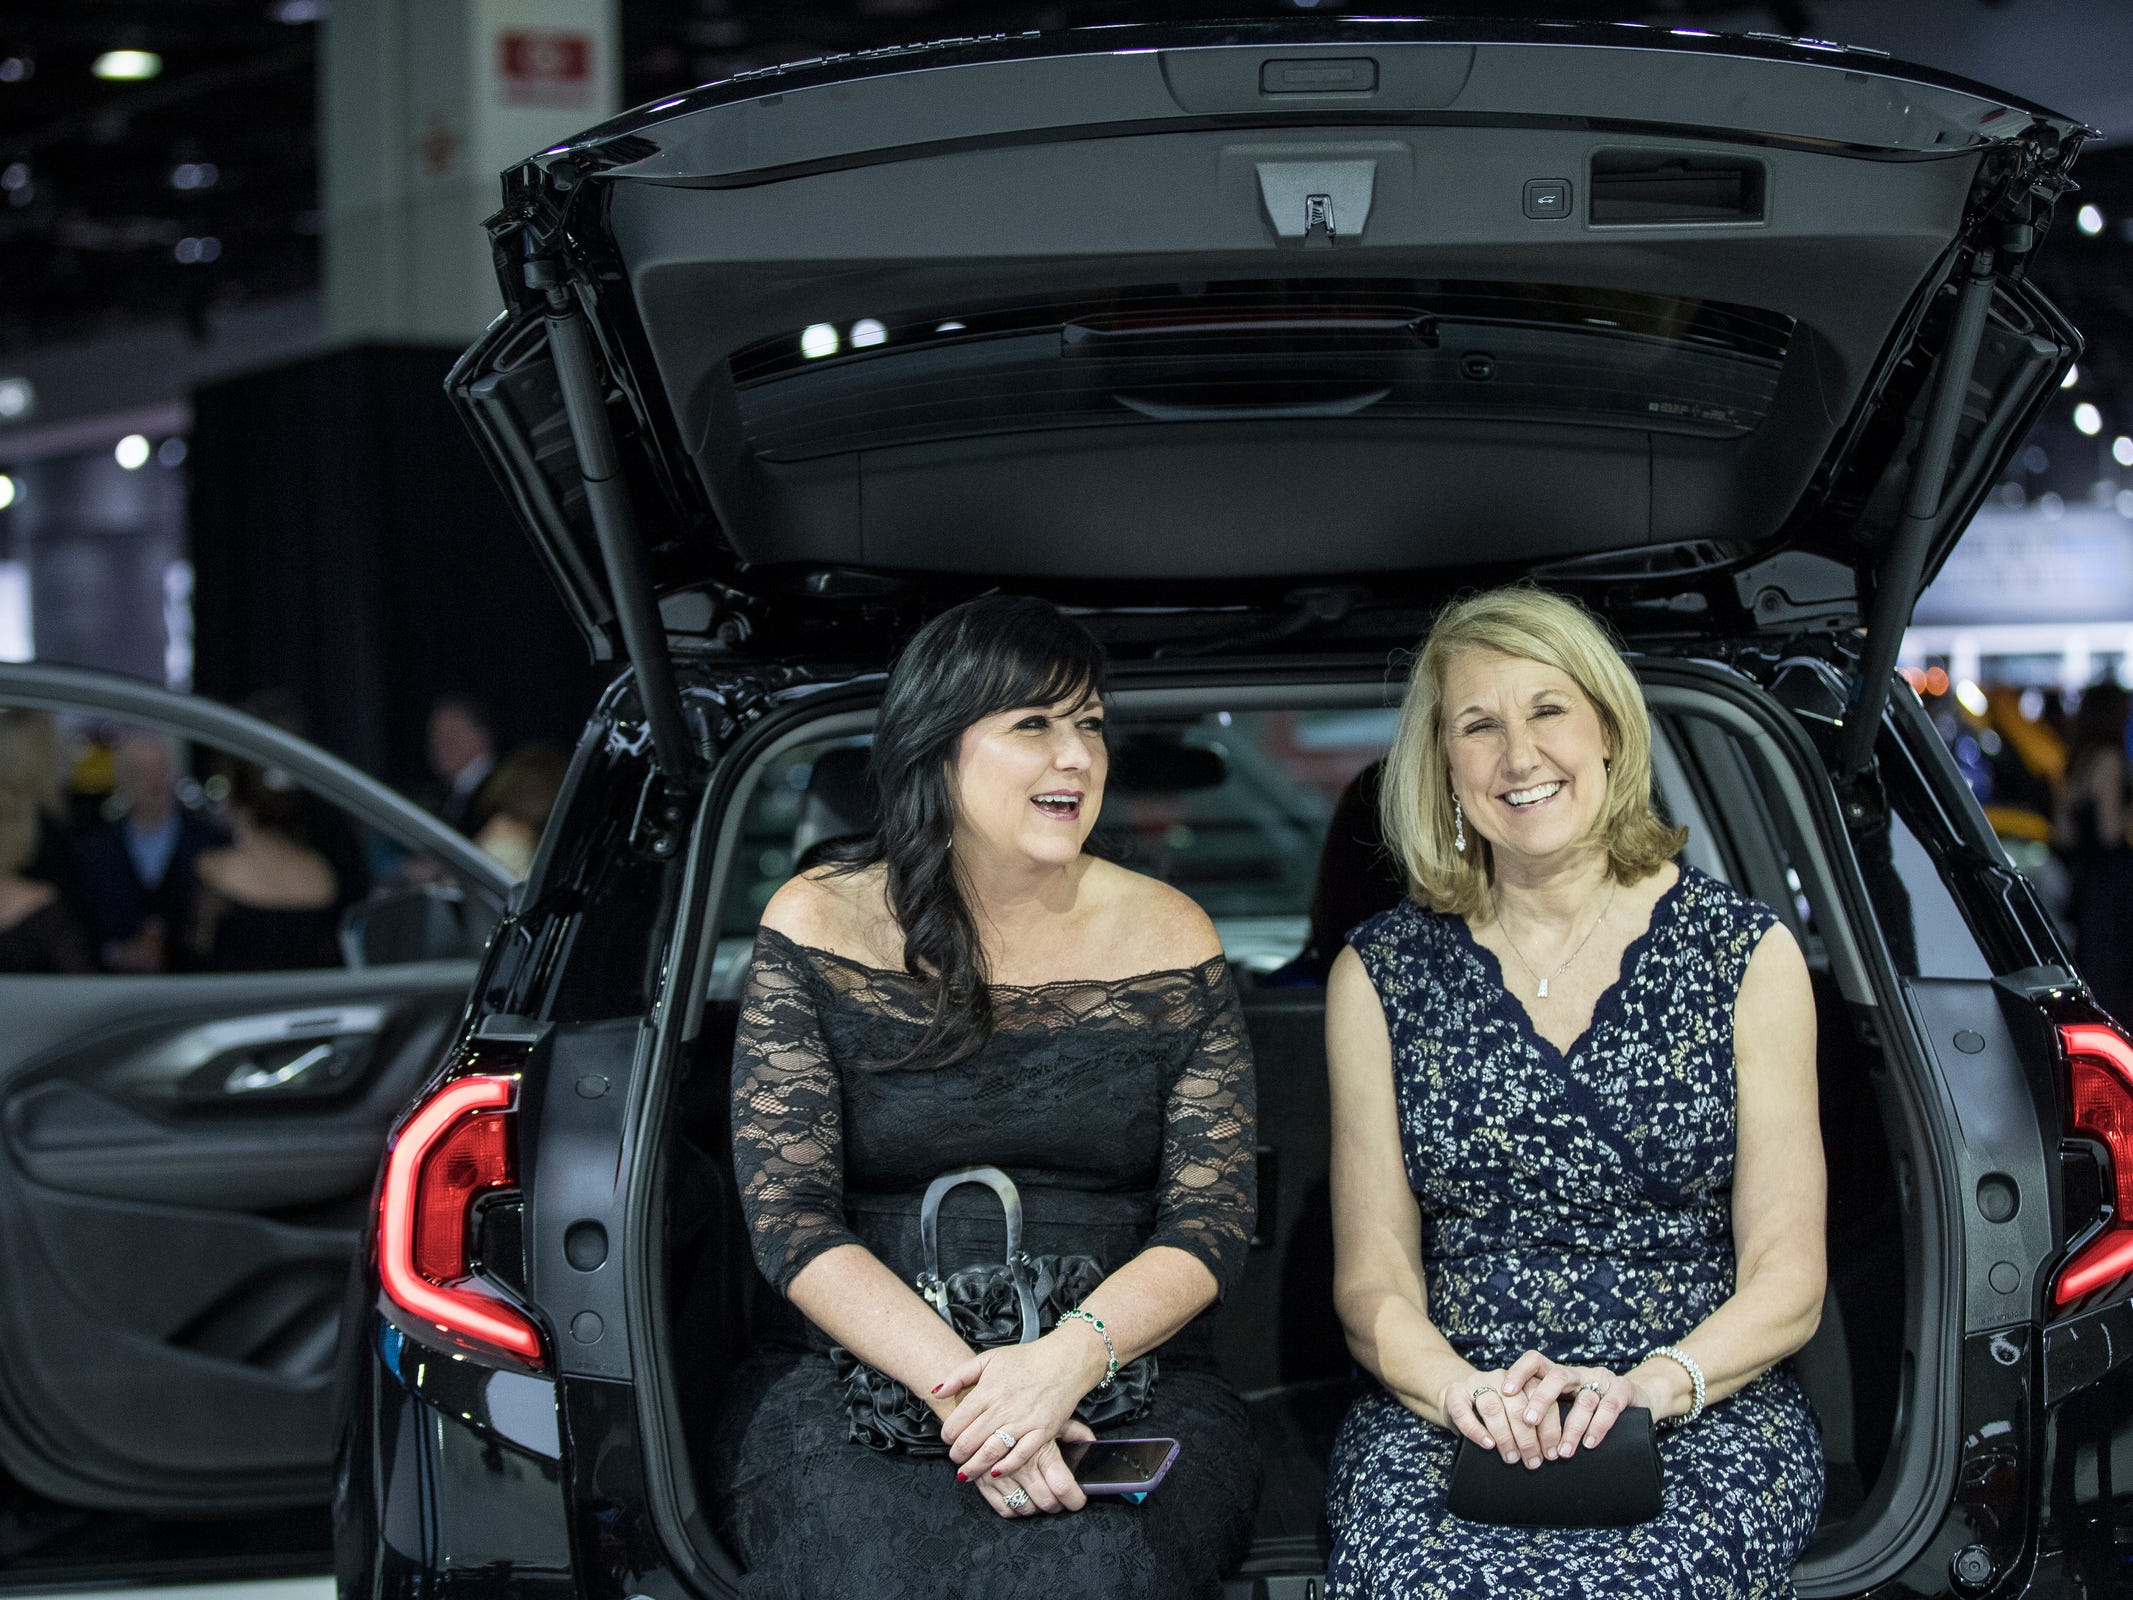 Tina Ireland of Phoenix, Ariz. and Cindy Brosious of Detroit share a laughter in the back of a 2019 GMC Terrain during the 2019 North American International Auto Show Charity Preview at Cobo Center in Detroit on Friday, January 18, 2019.